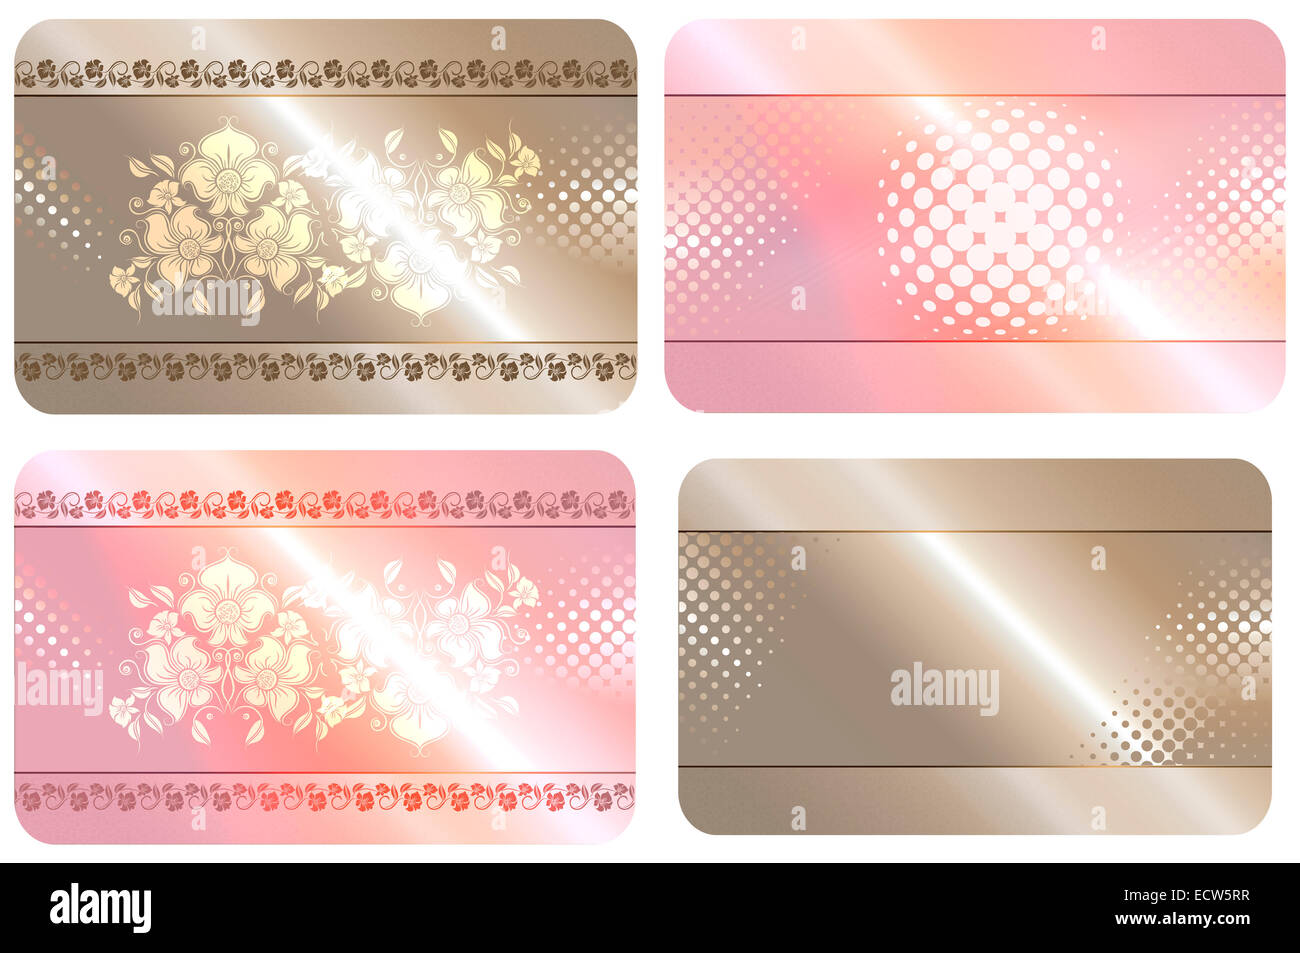 Gift Cards Background Stock Photos Gift Cards Background Stock